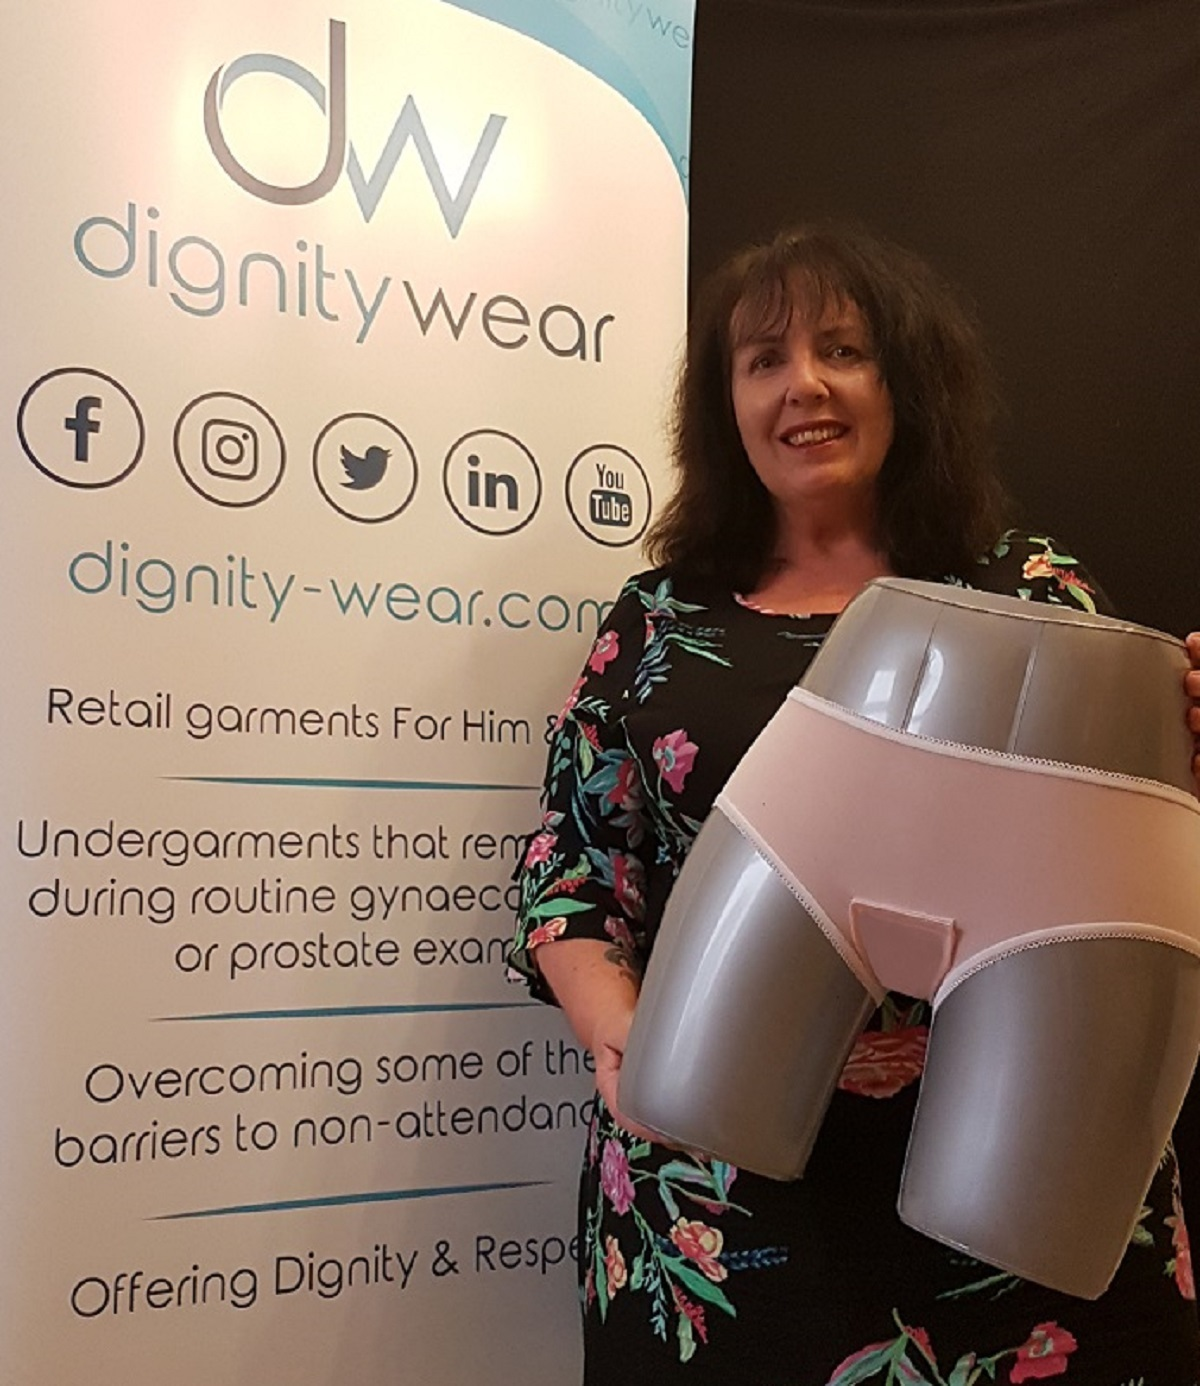 Sally Benson, owner of Dignity Wear, which has just launched its first range of underwear